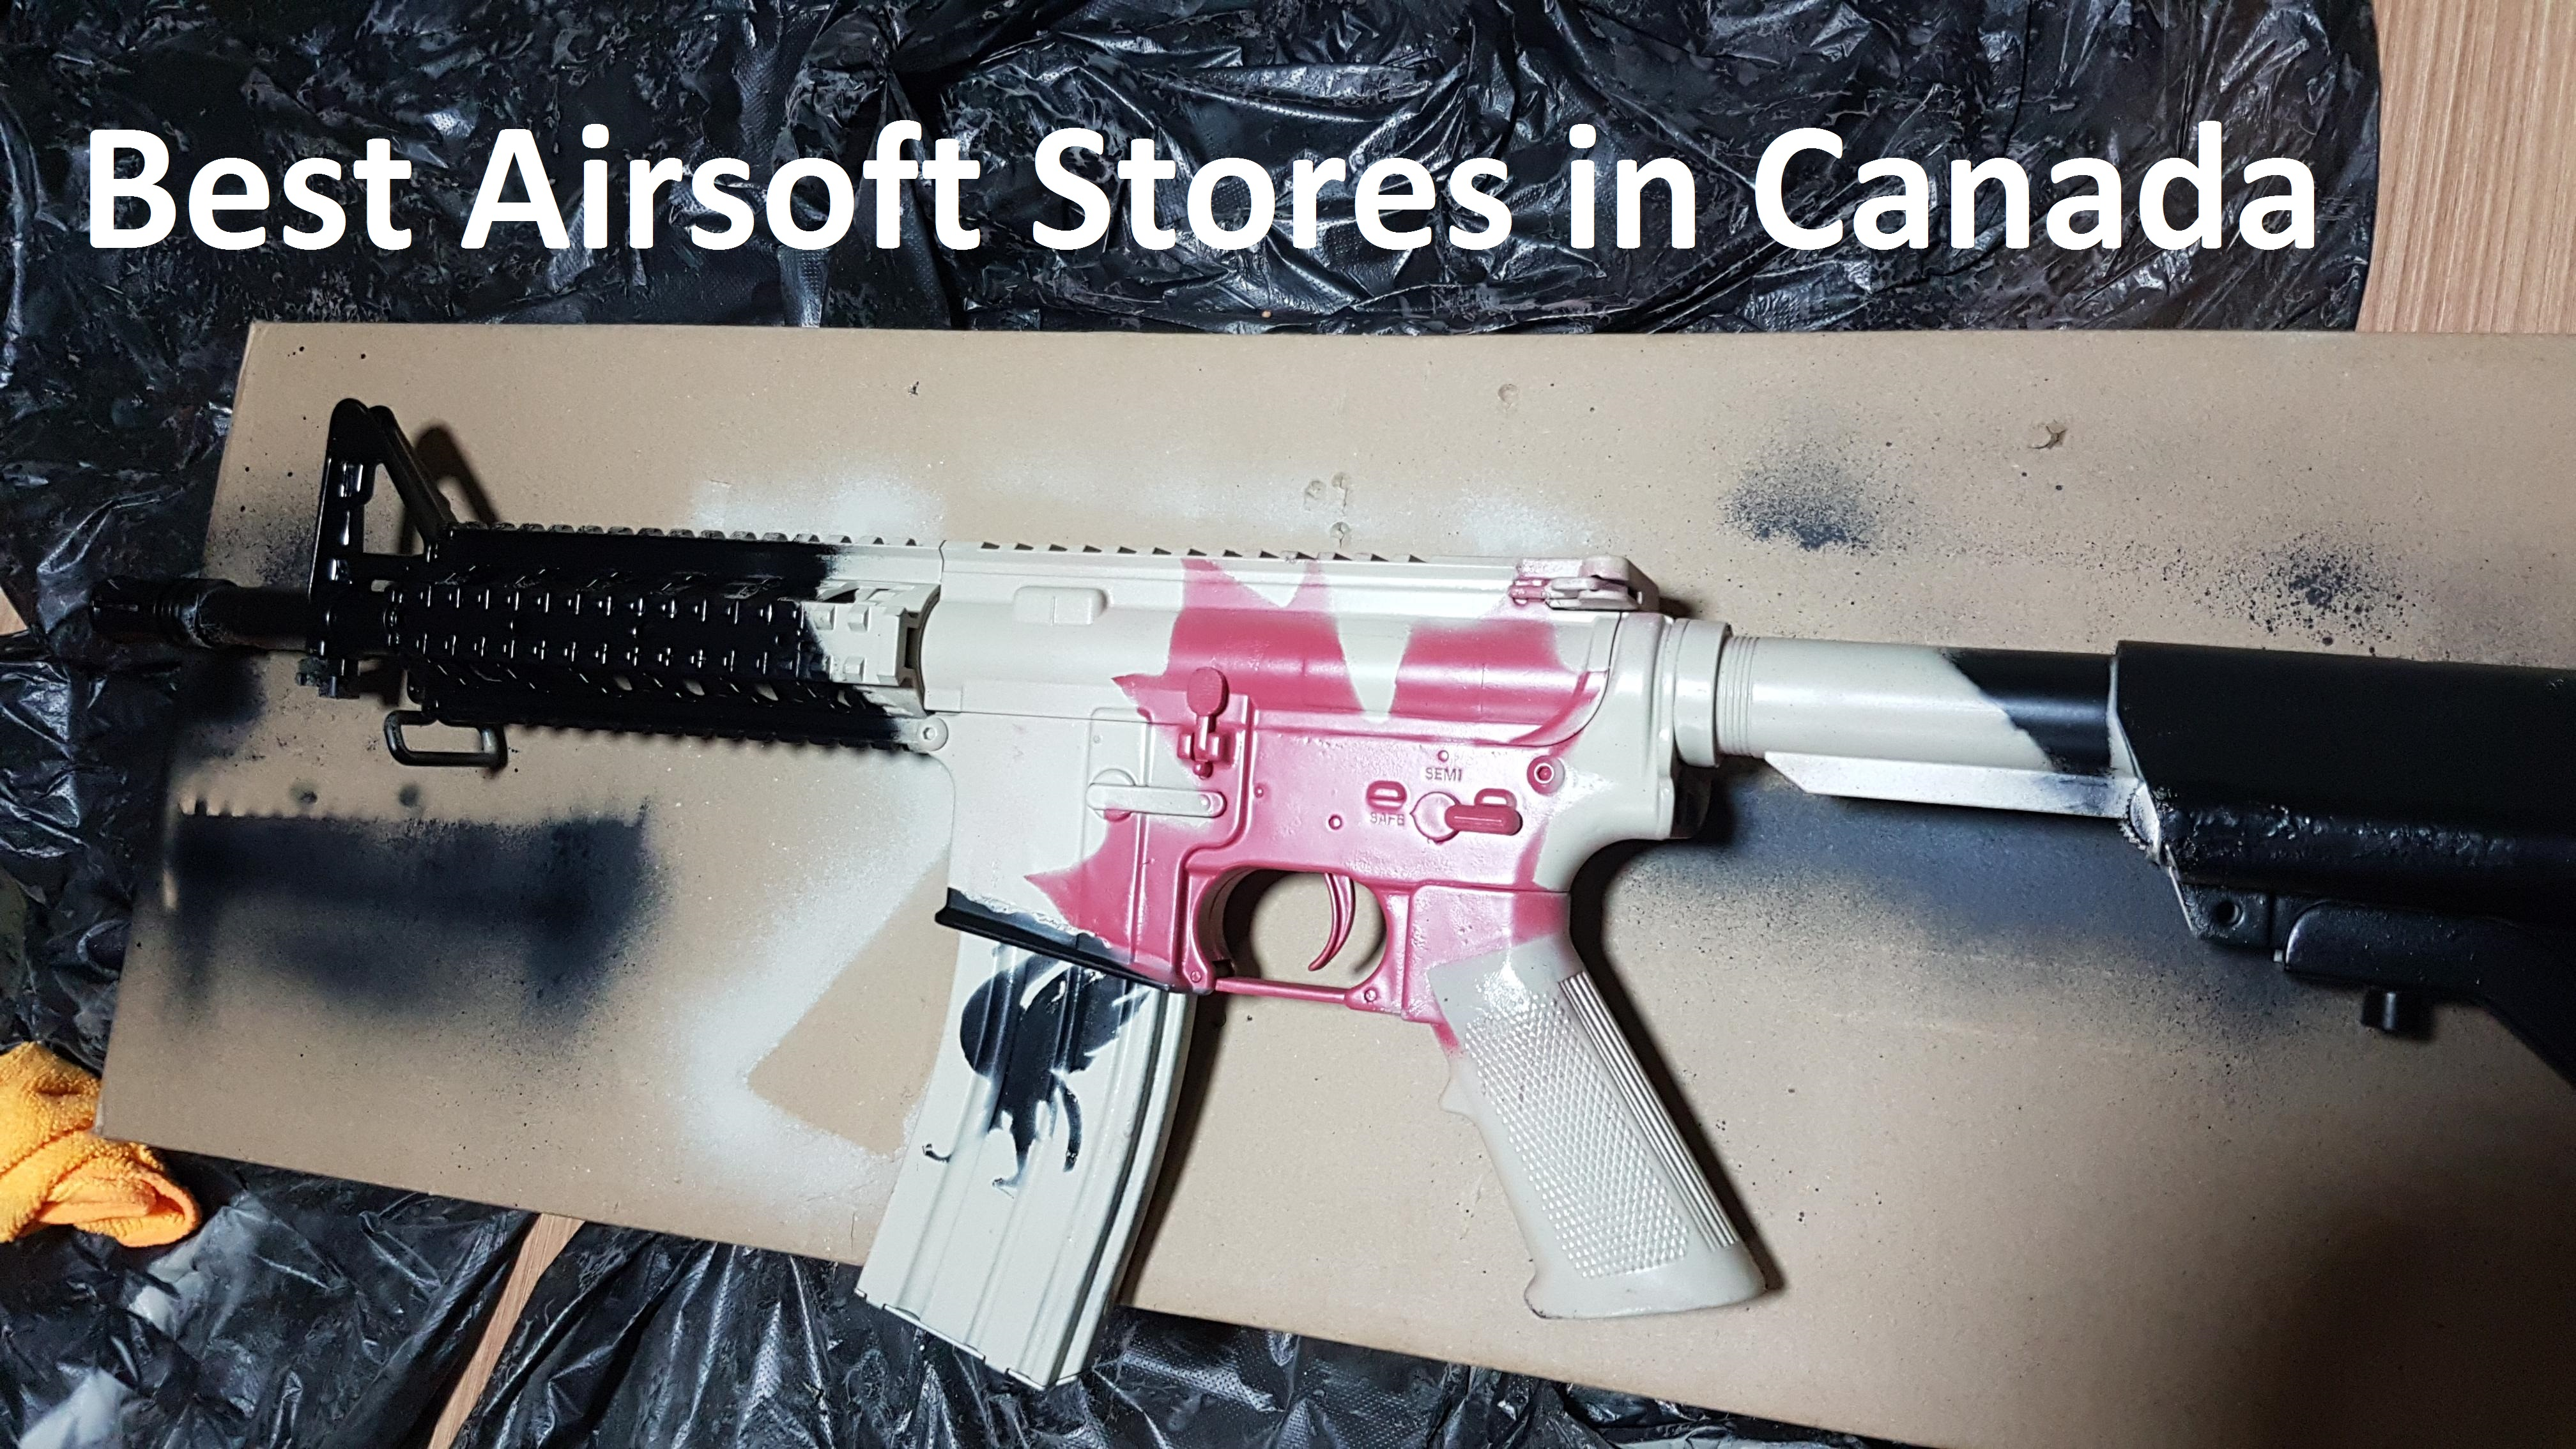 Airsoft Stores in Canada